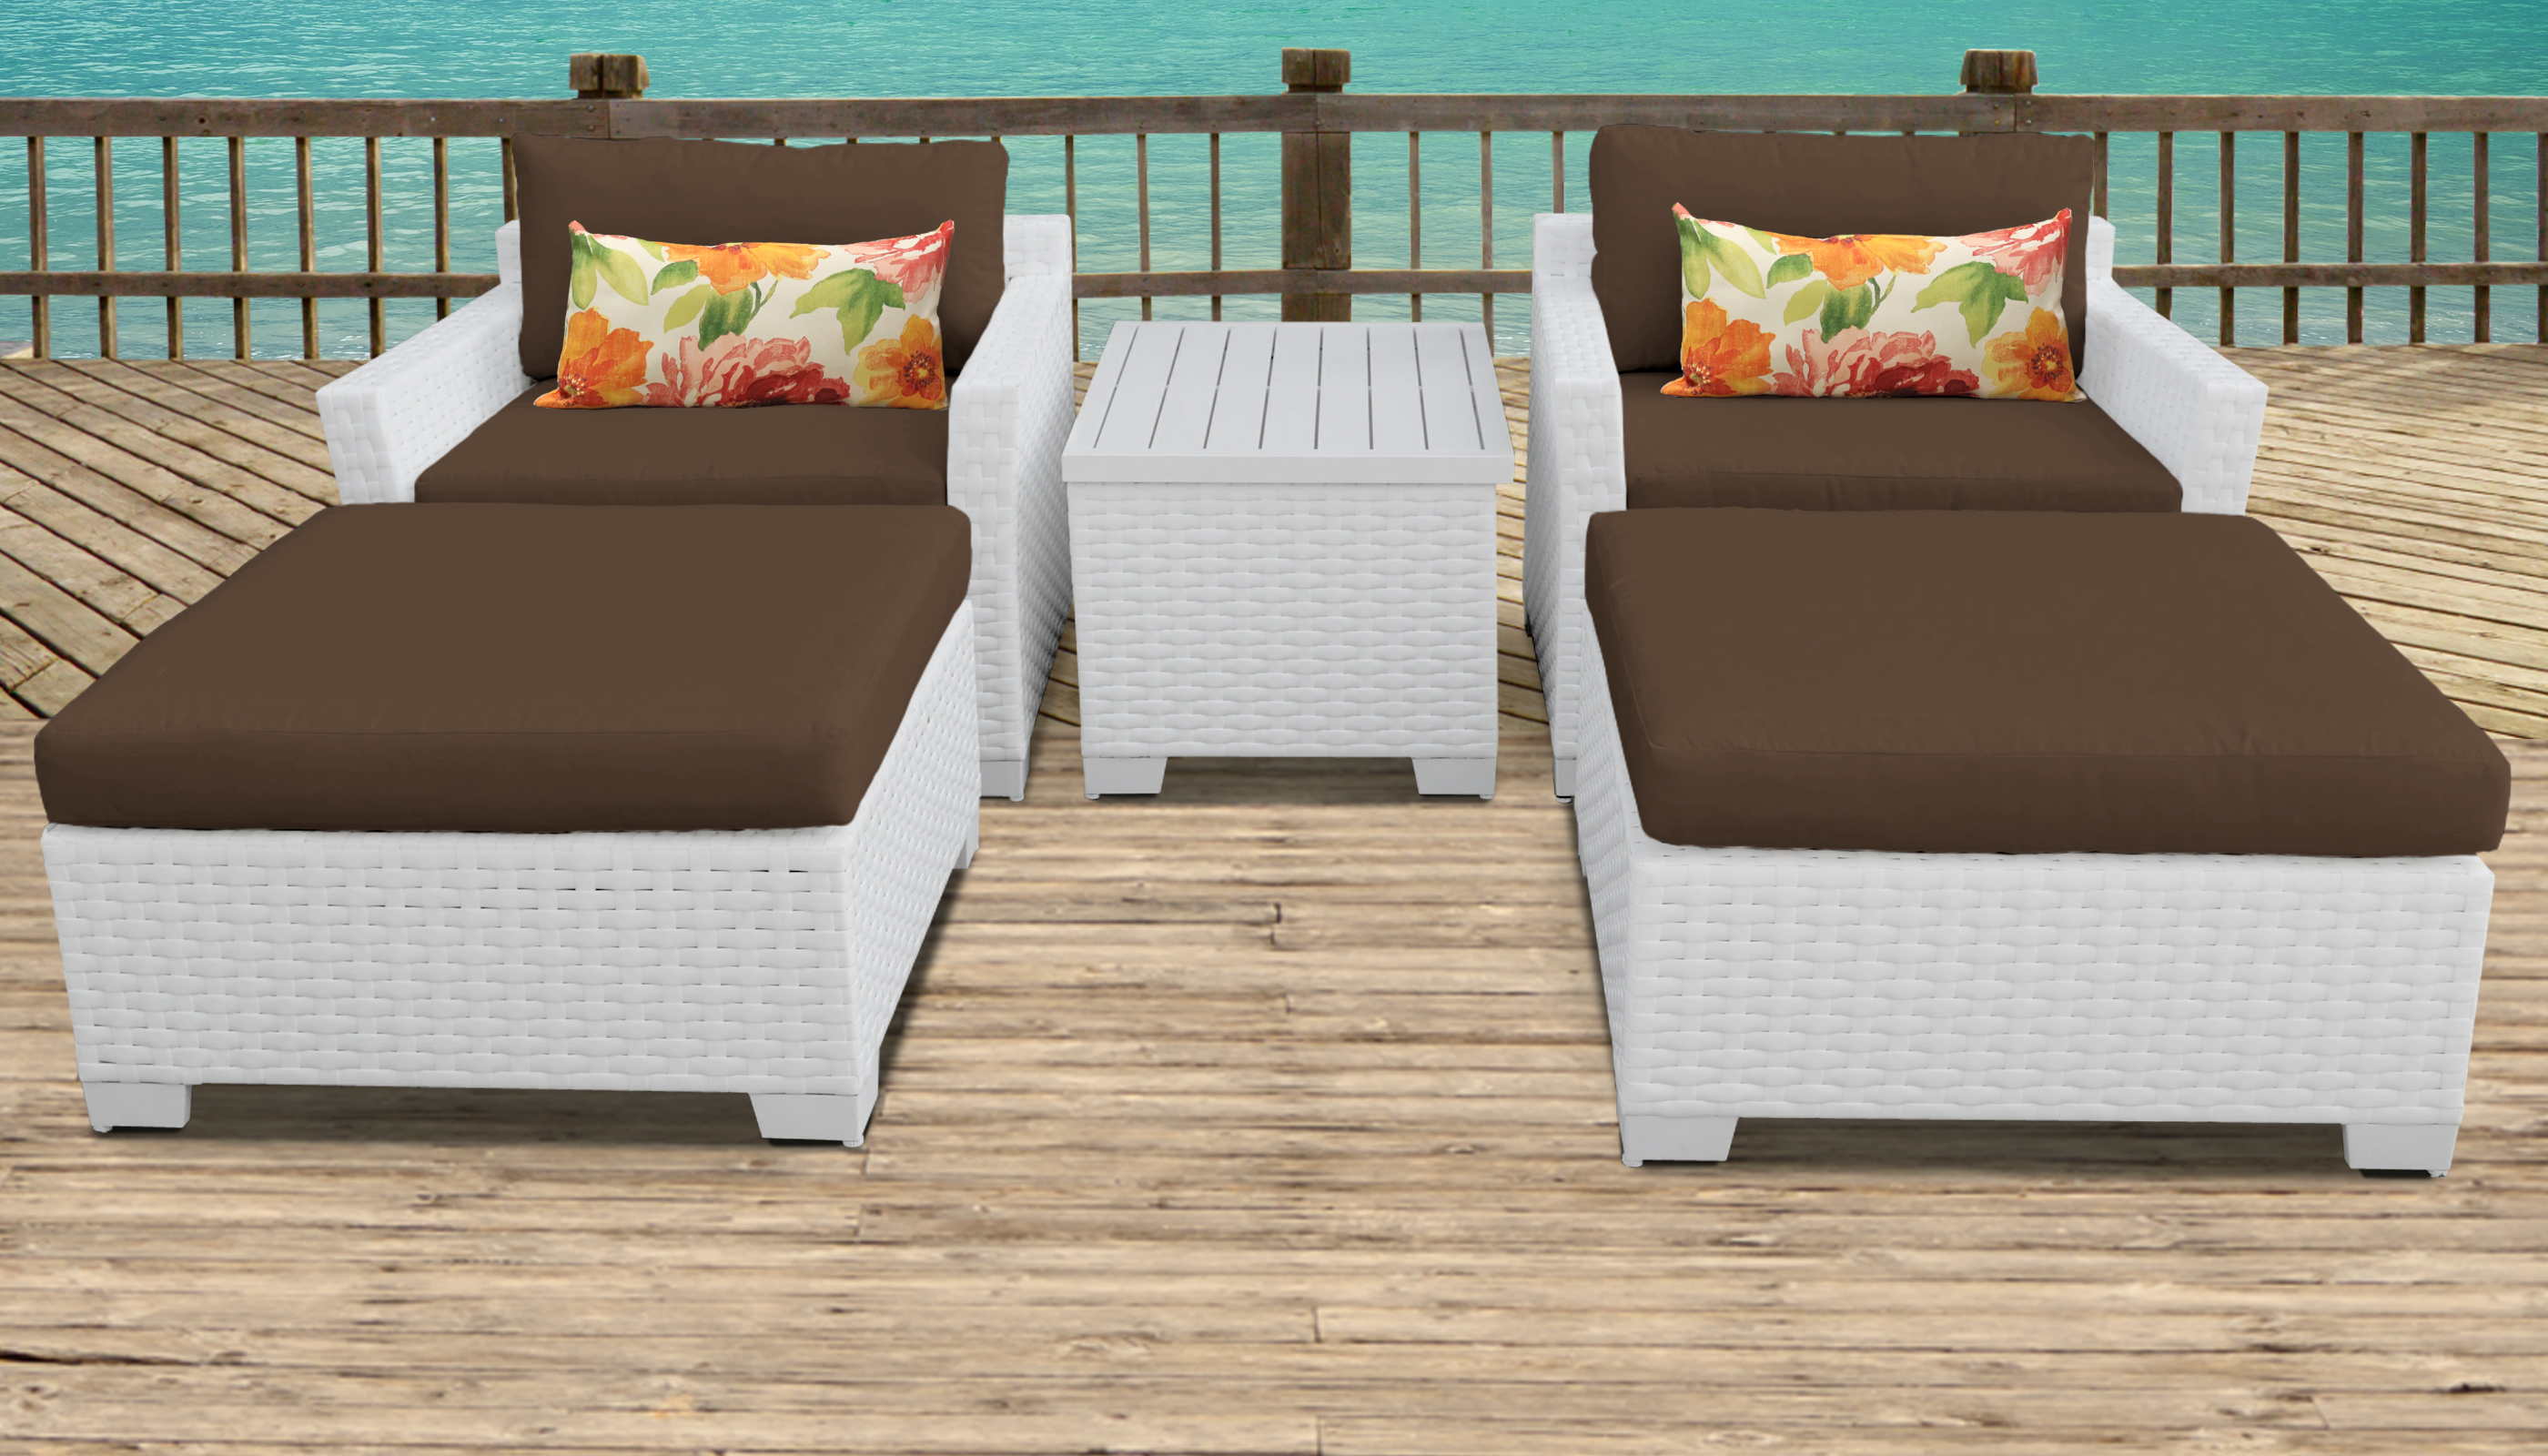 Pearl Bay 5 Piece Outdoor Wicker Patio Furniture Set 05a - Design Furnishings